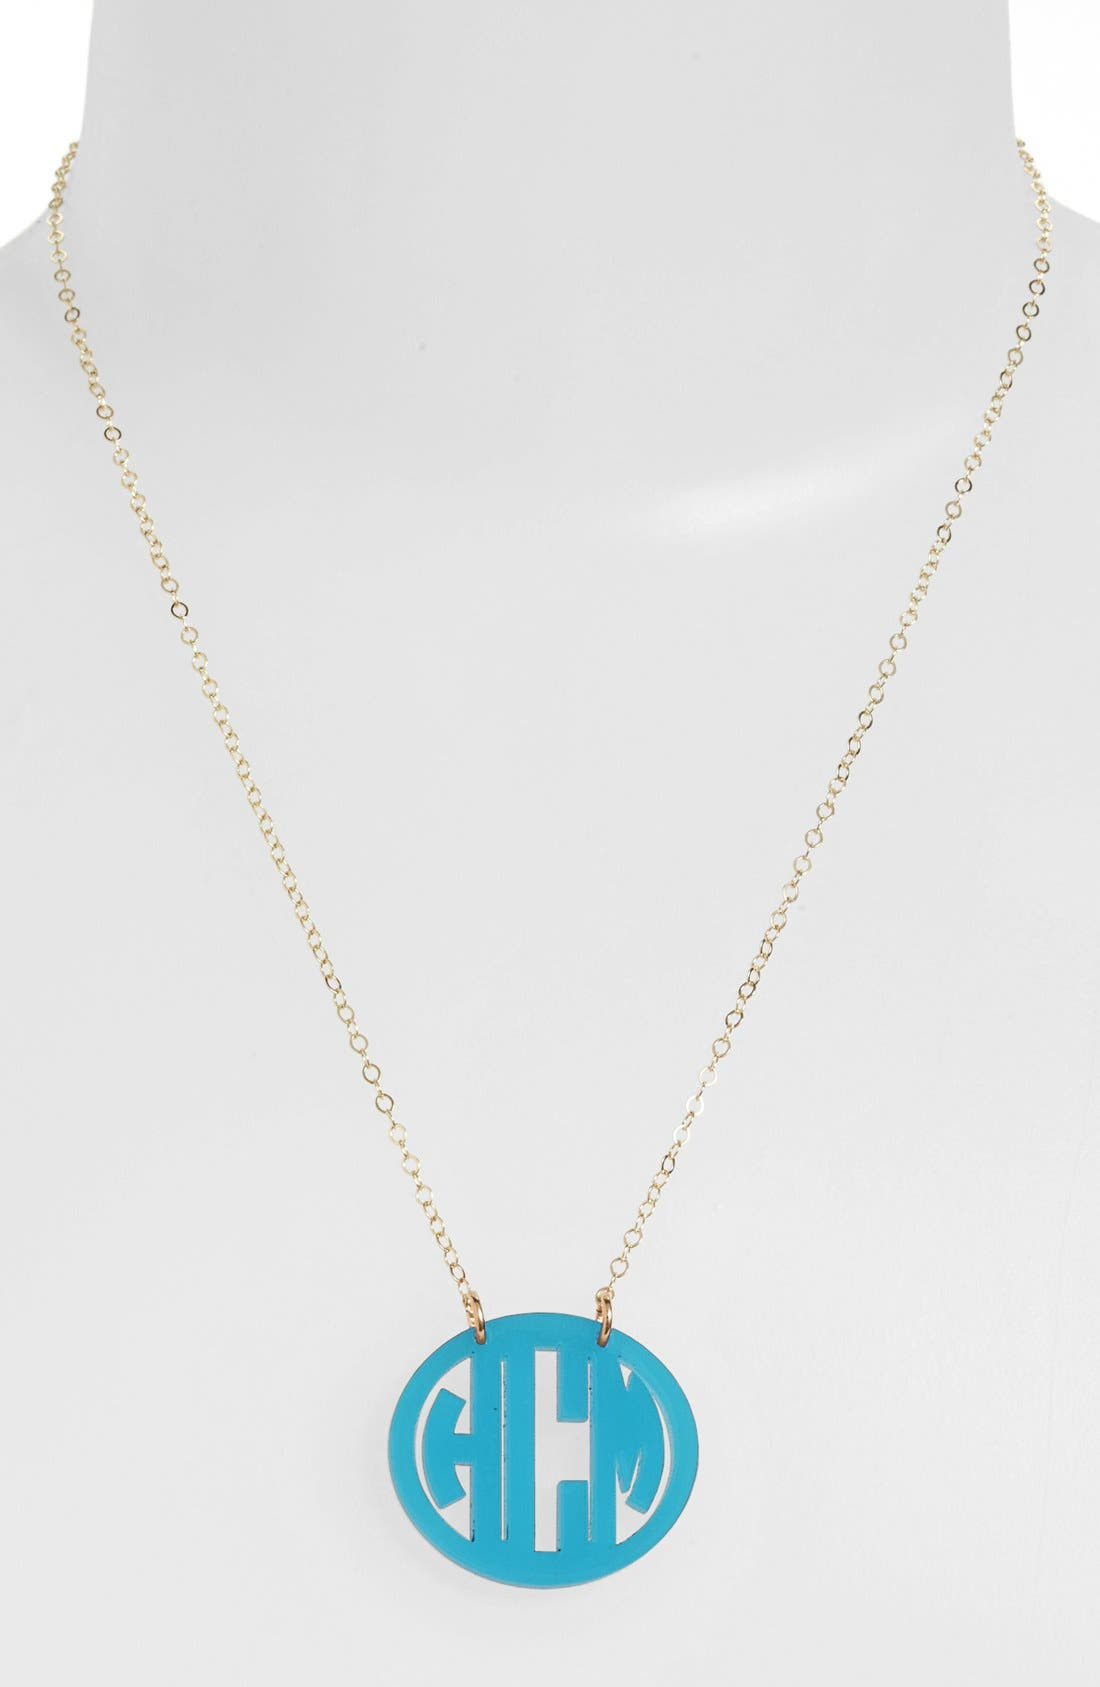 MOON AND LOLA Small Personalized Monogram Pendant Necklace, Main, color, TURQUOISE/ GOLD